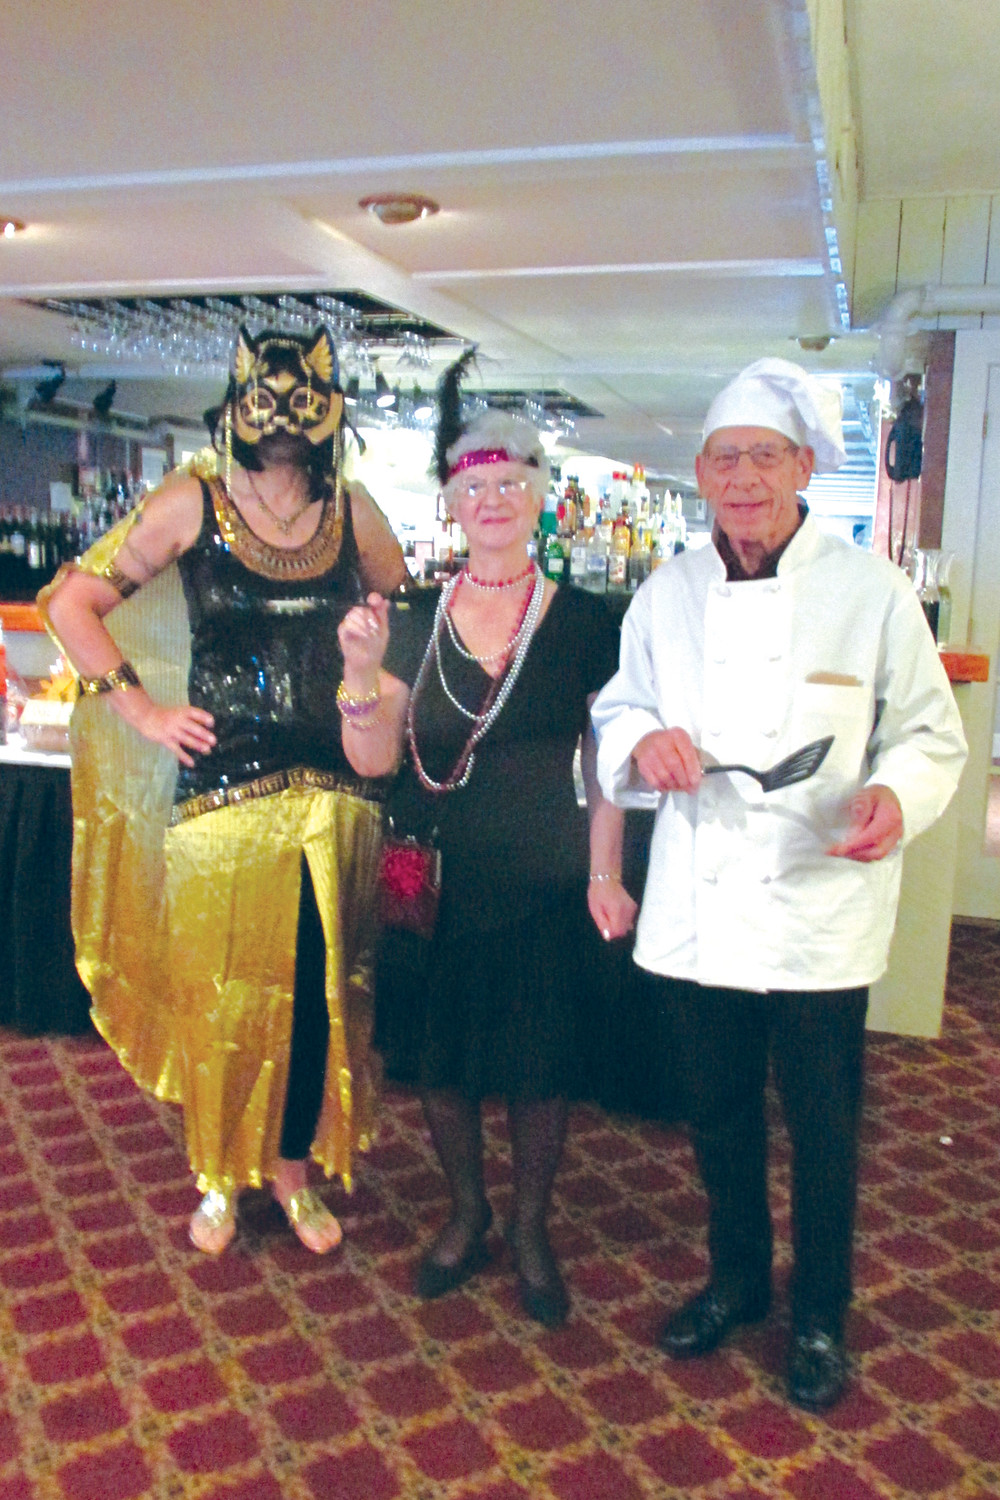 GRAND GARB: Manton Seniors members Naomi Simmons, Rose Coppola and Bob Tetreault Sr. were among those folks who dressed special for Sunday's Halloween Dinner/Dance.